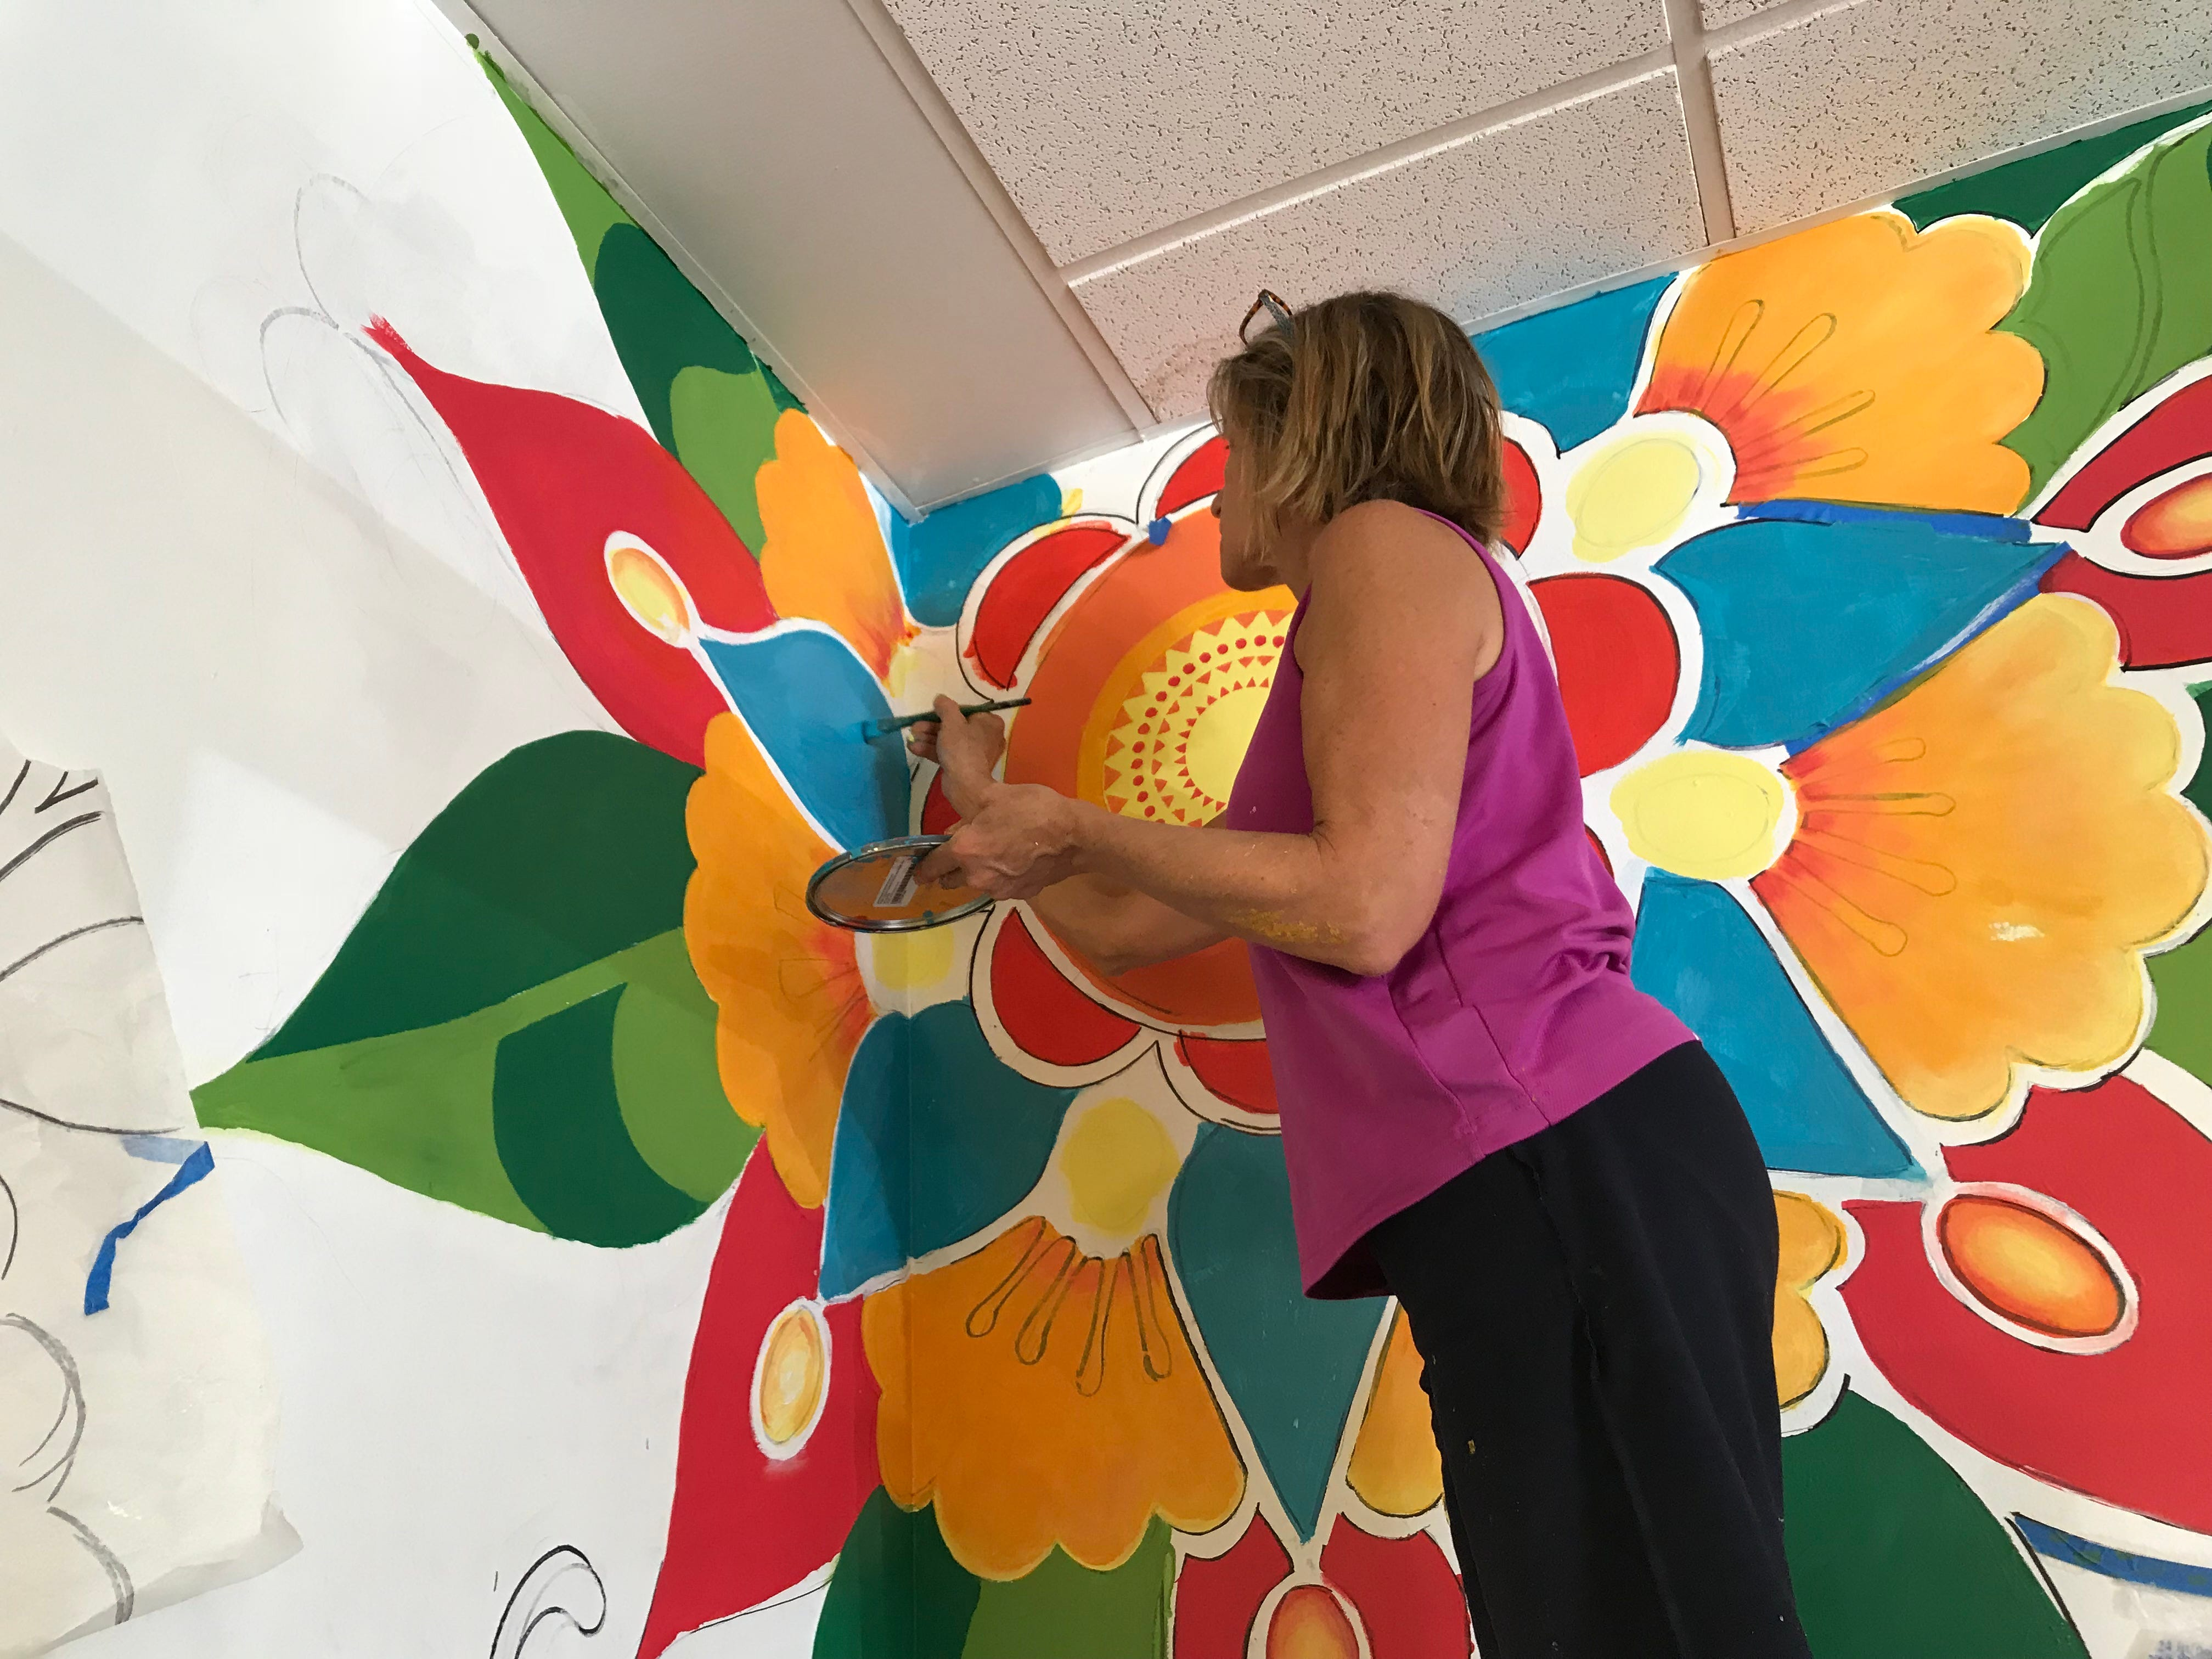 Colleen L'Hommedieu paints a mural at the Itacate in Chili.